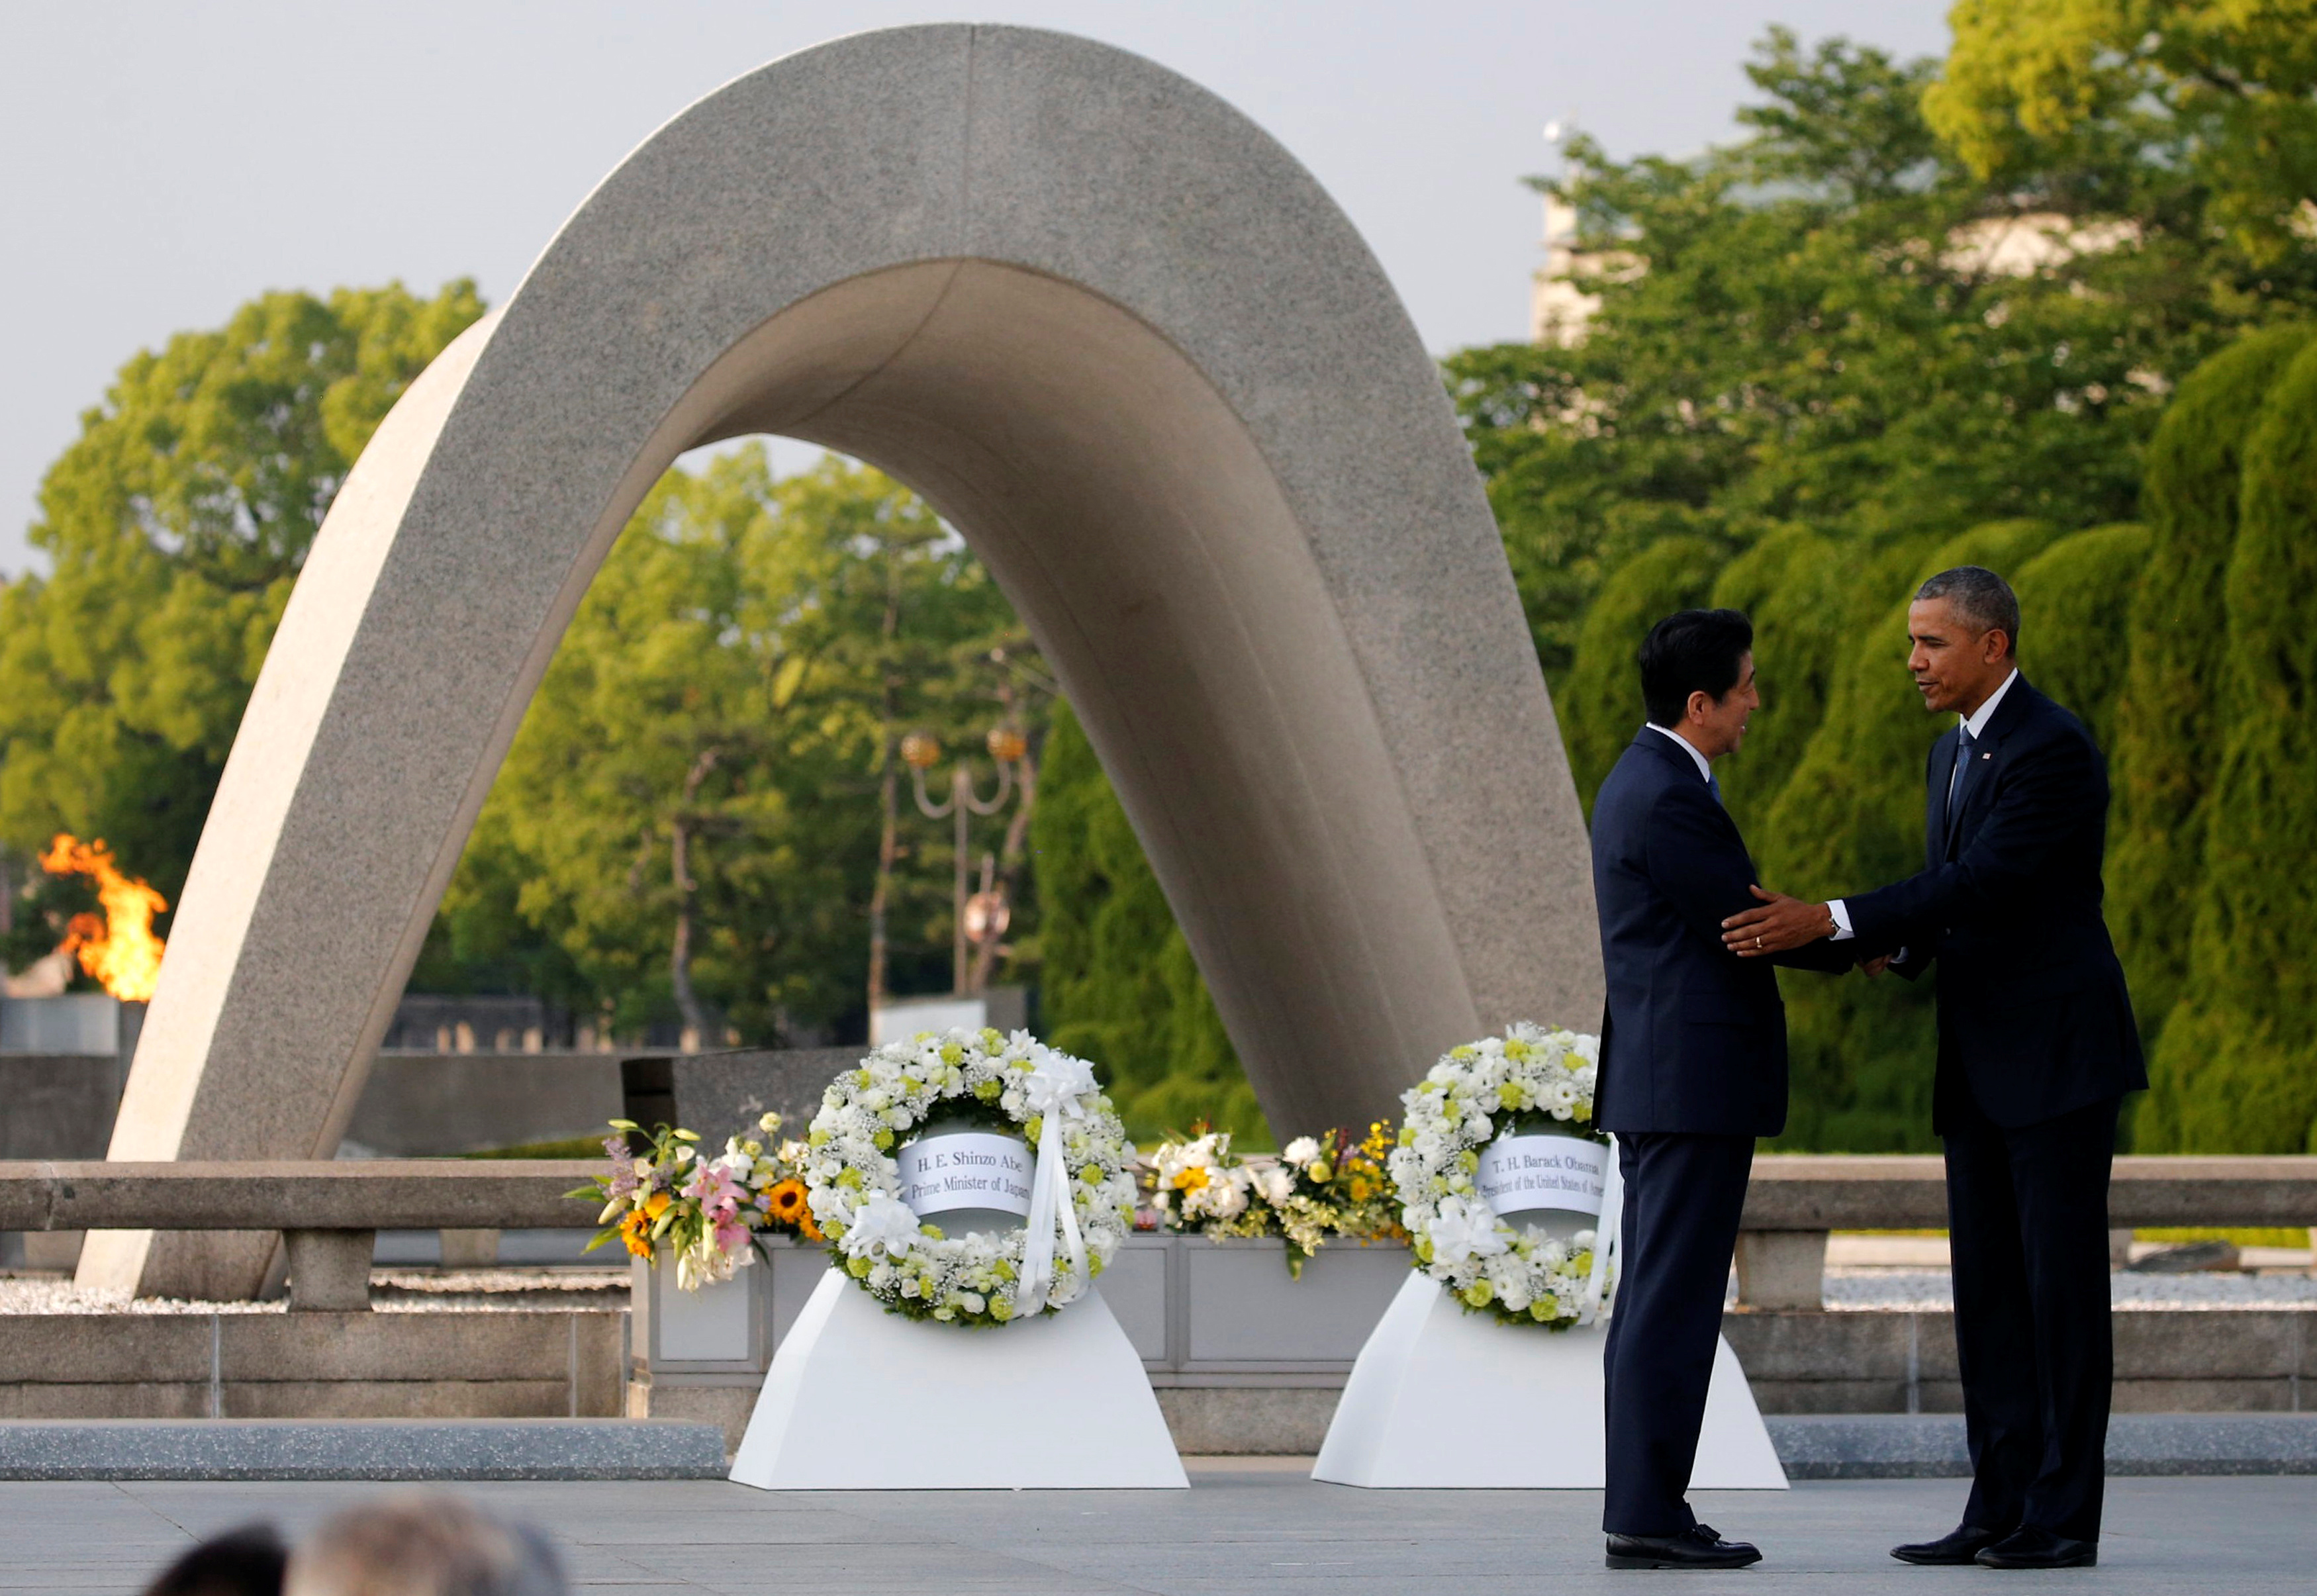 U.S. President Barack Obama puts his arm around Japanese Prime Minister Shinzo Abe after they laid wreaths in front of a cenotaph at Hiroshima Peace Memorial Park in Hiroshima, Japan on Friday. Photo by REUTERS/Carlos Barria